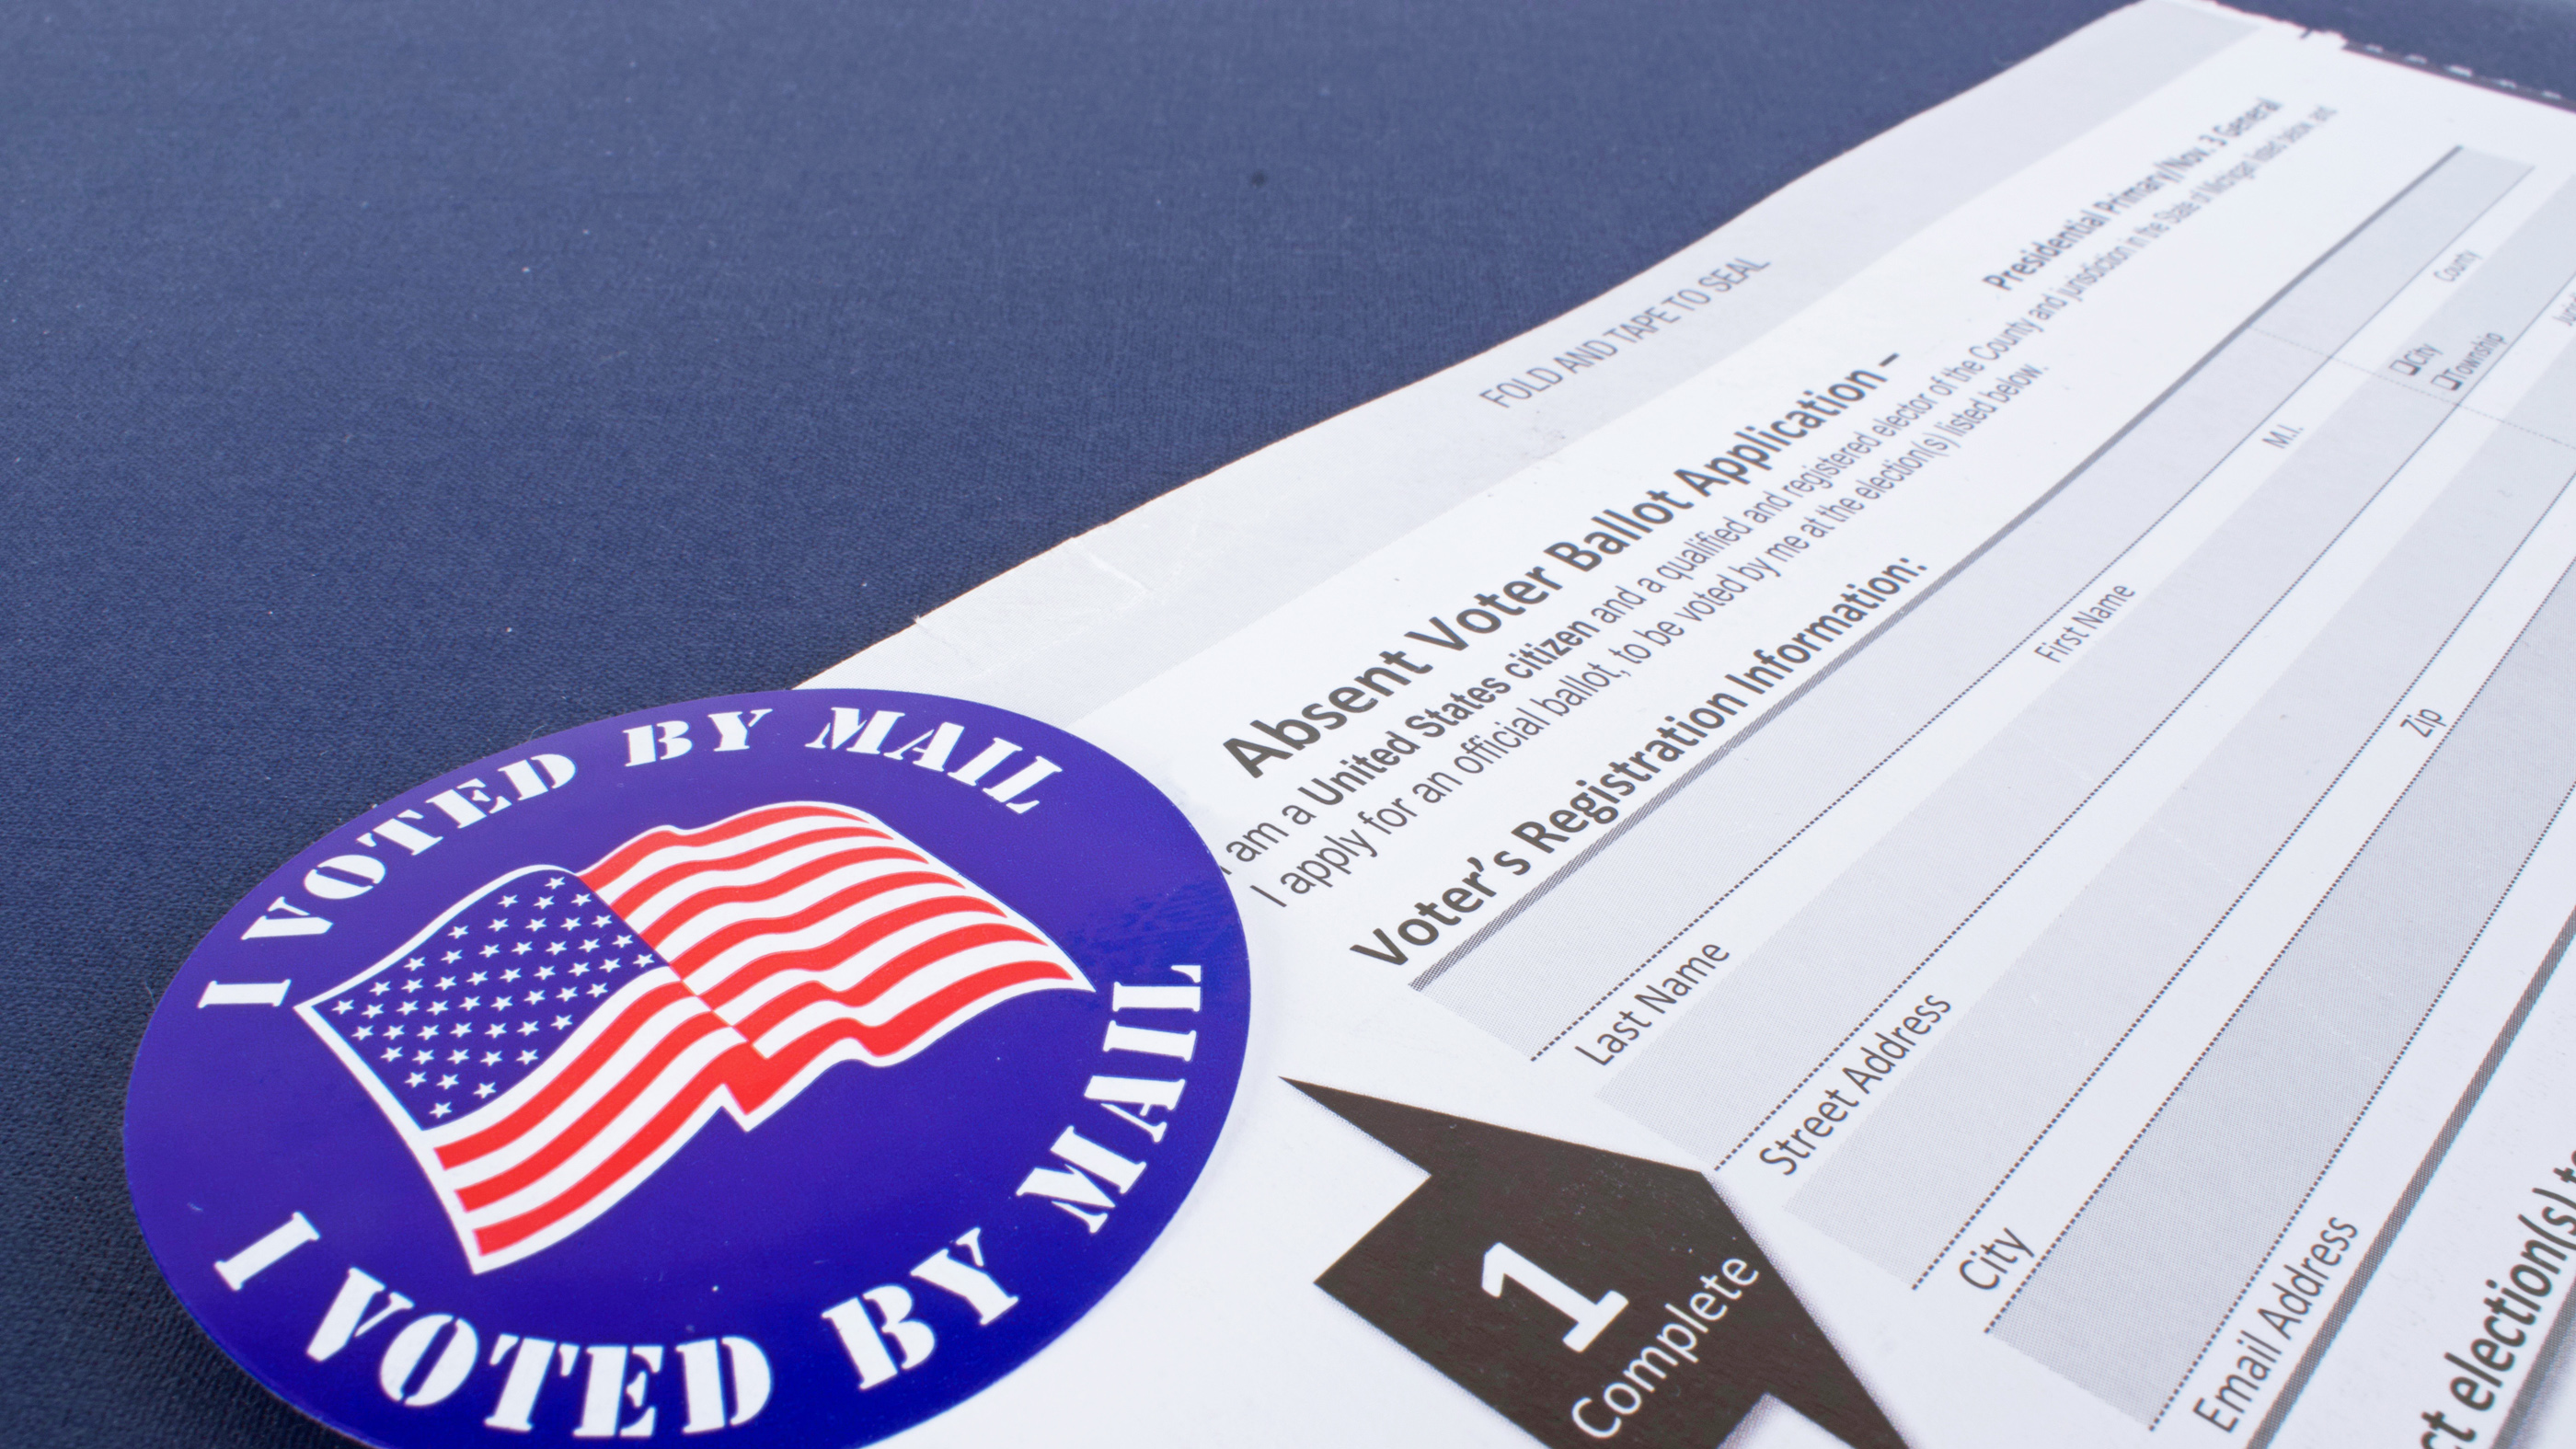 An absentee ballot to vote by mail.